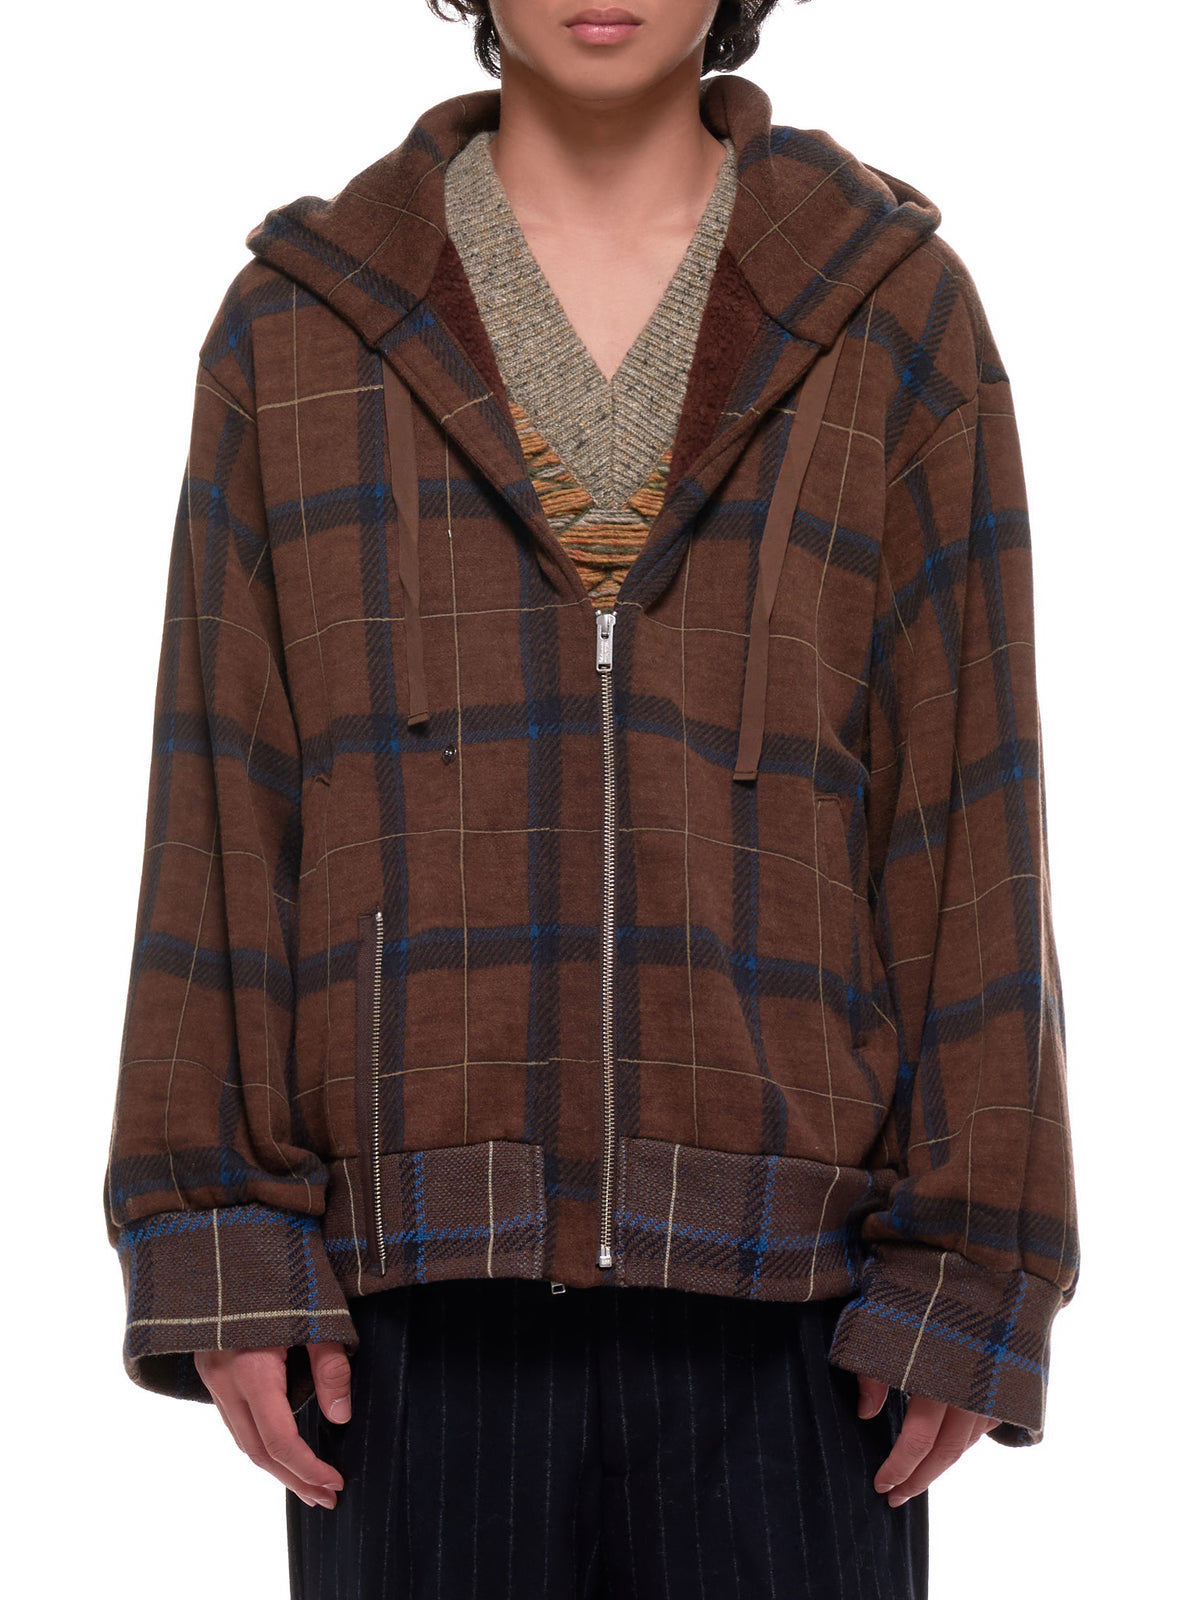 Plaid Zip-Up Hoodie (UCZ4801-BROWN-CHECK)